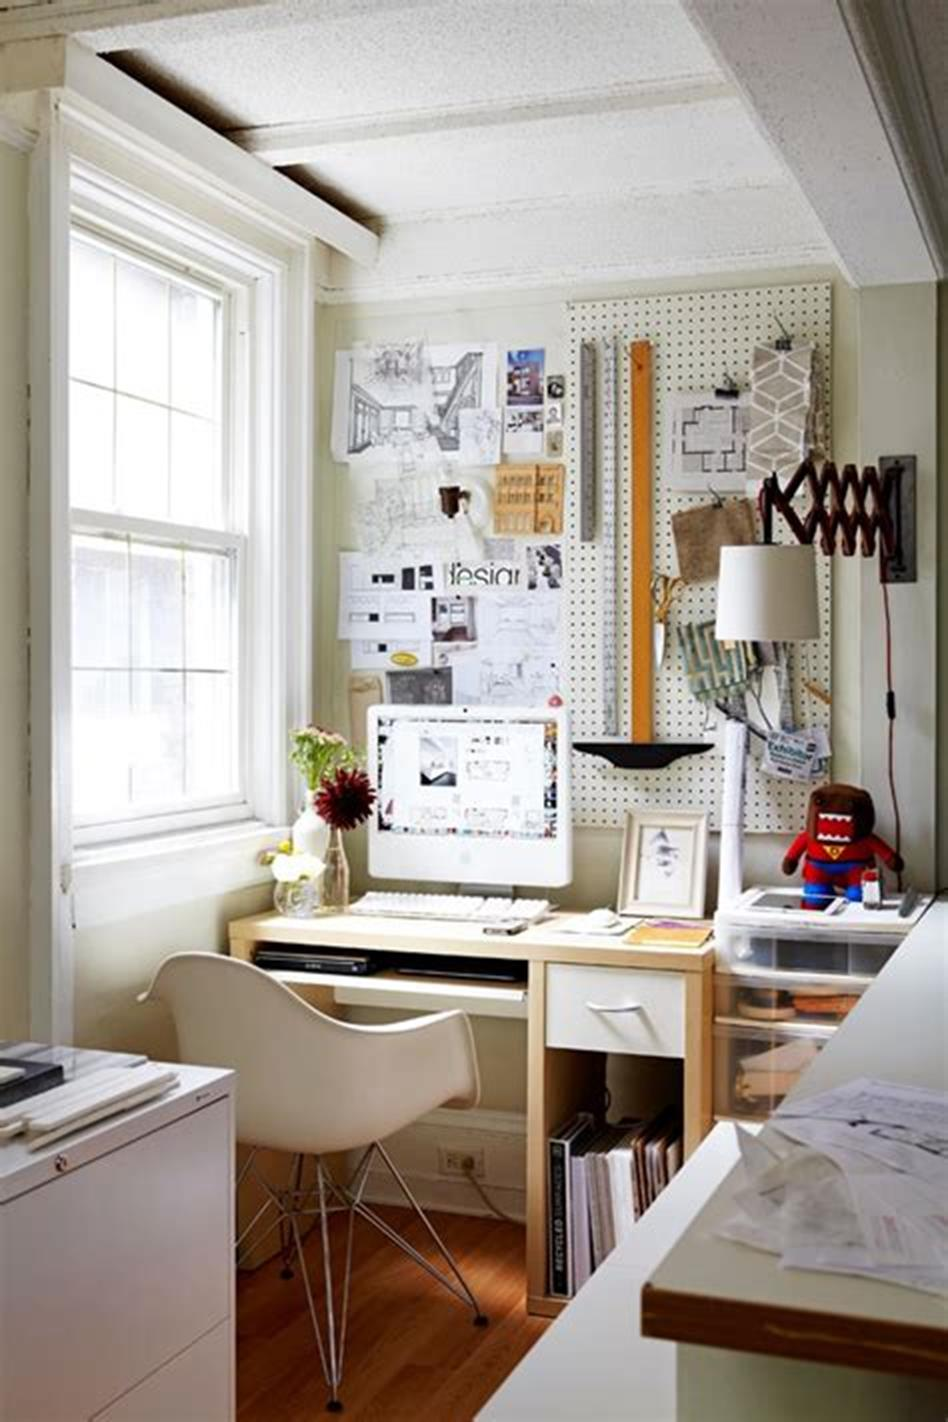 50 Best Small Space Office Decorating Ideas On a Budget 2019 7